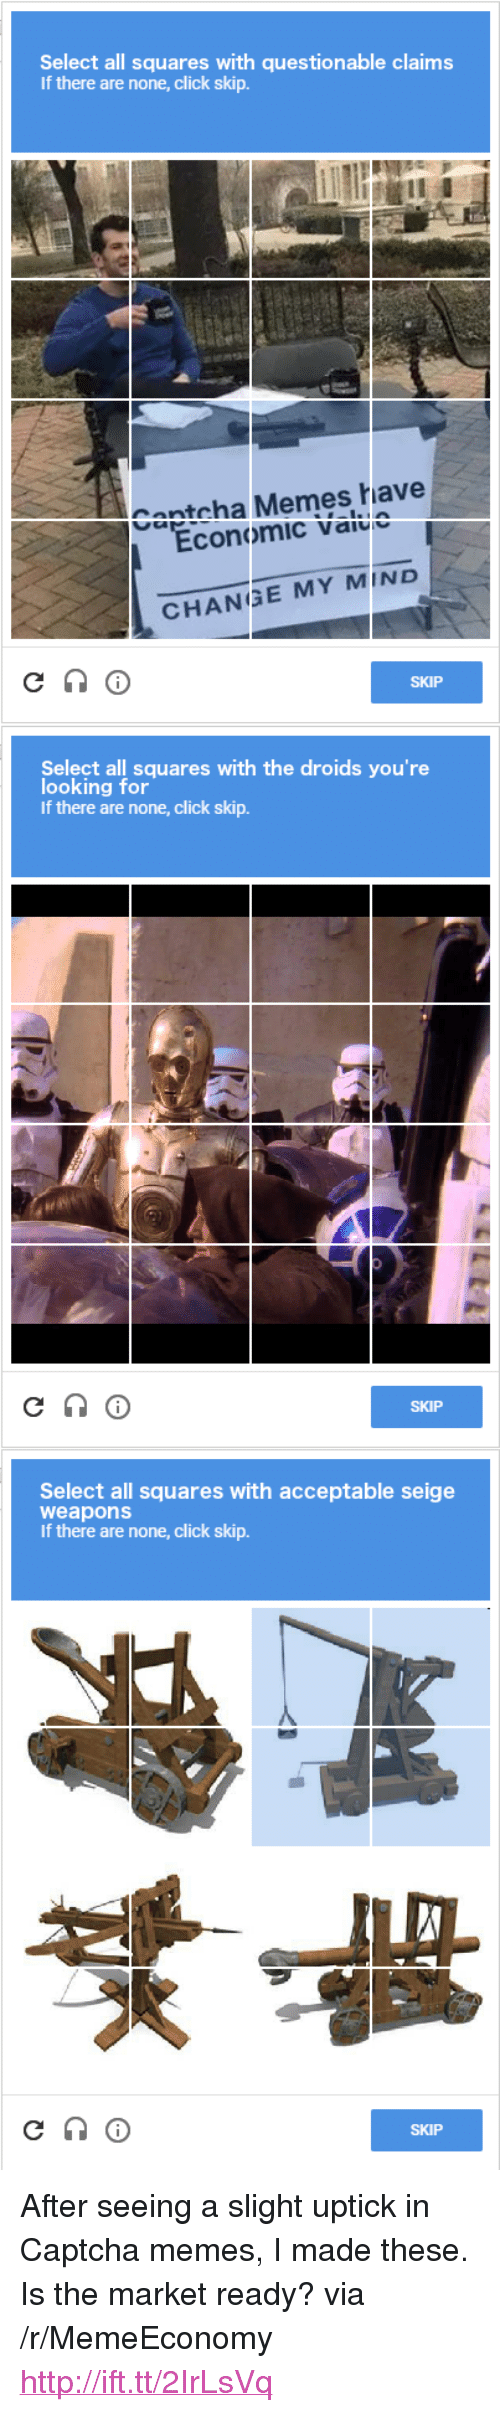 "Click, Memes, and Http: Select all squares with questionable claims  If there are none, click skip.  Captcha Memes have  Economic value  CHANGE MY MIND  SKIP  Select all squares with the droids you're  looking for  If there are none, click skip.  SKIP  Select all squares with acceptable seige  weapons  If there are none, click skip.  SKIP <p>After seeing a slight uptick in Captcha memes, I made these. Is the market ready? via /r/MemeEconomy <a href=""http://ift.tt/2IrLsVq"">http://ift.tt/2IrLsVq</a></p>"